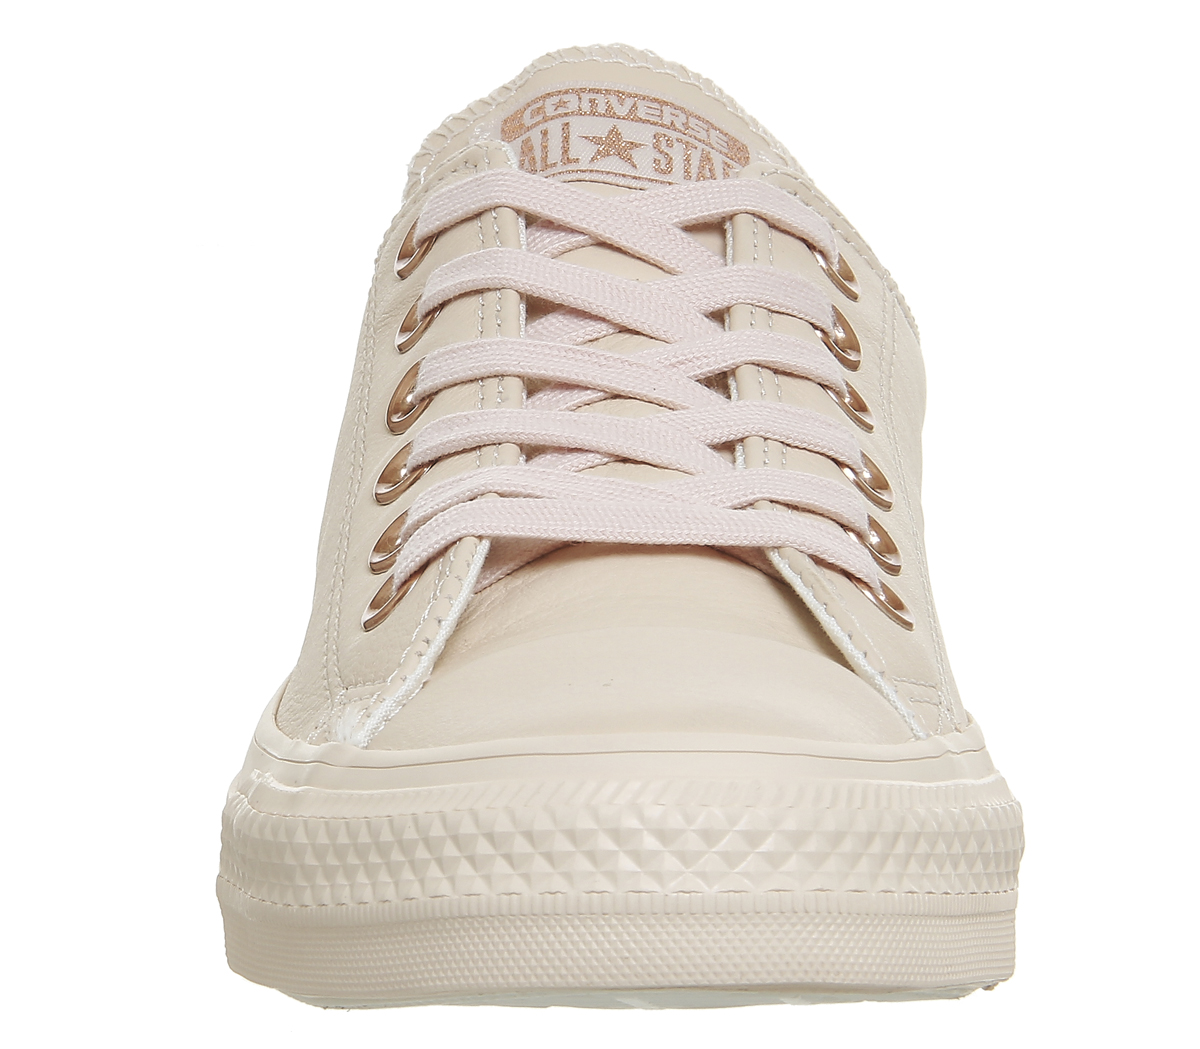 a0a91ddc2e1b Sentinel Womens Converse All Star Low Leather Pastel Rose Tan Rose Gold  Trainers Shoes